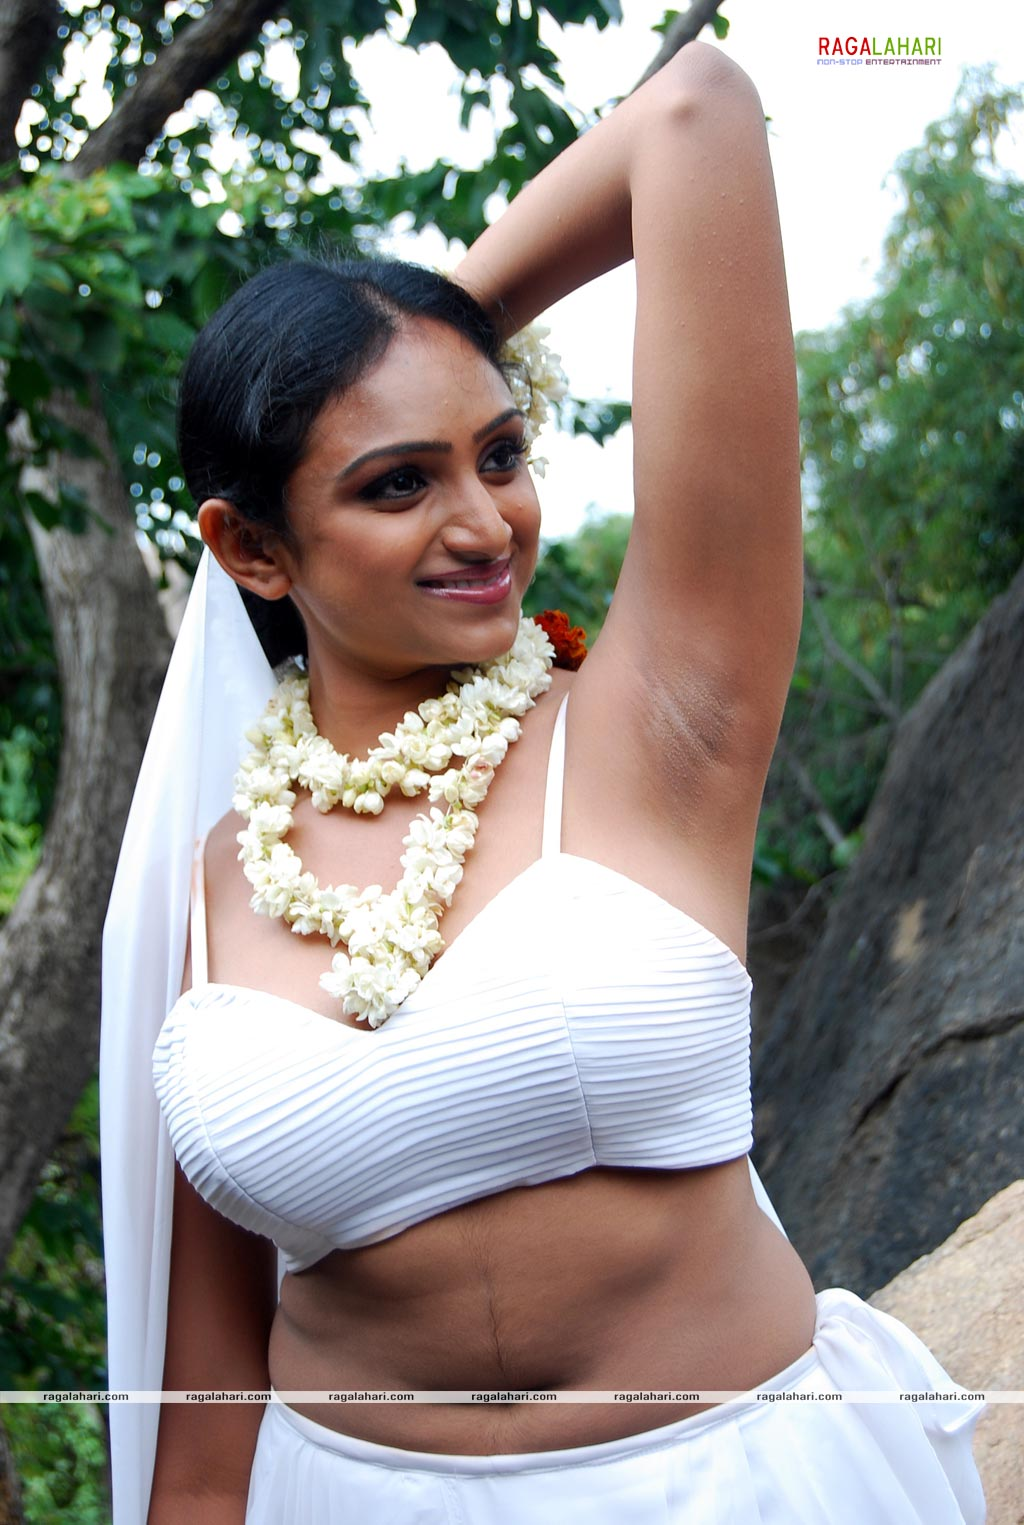 Hairy Armpit Indian Aunty pertaining to hairy navel | ohmydesi's blog